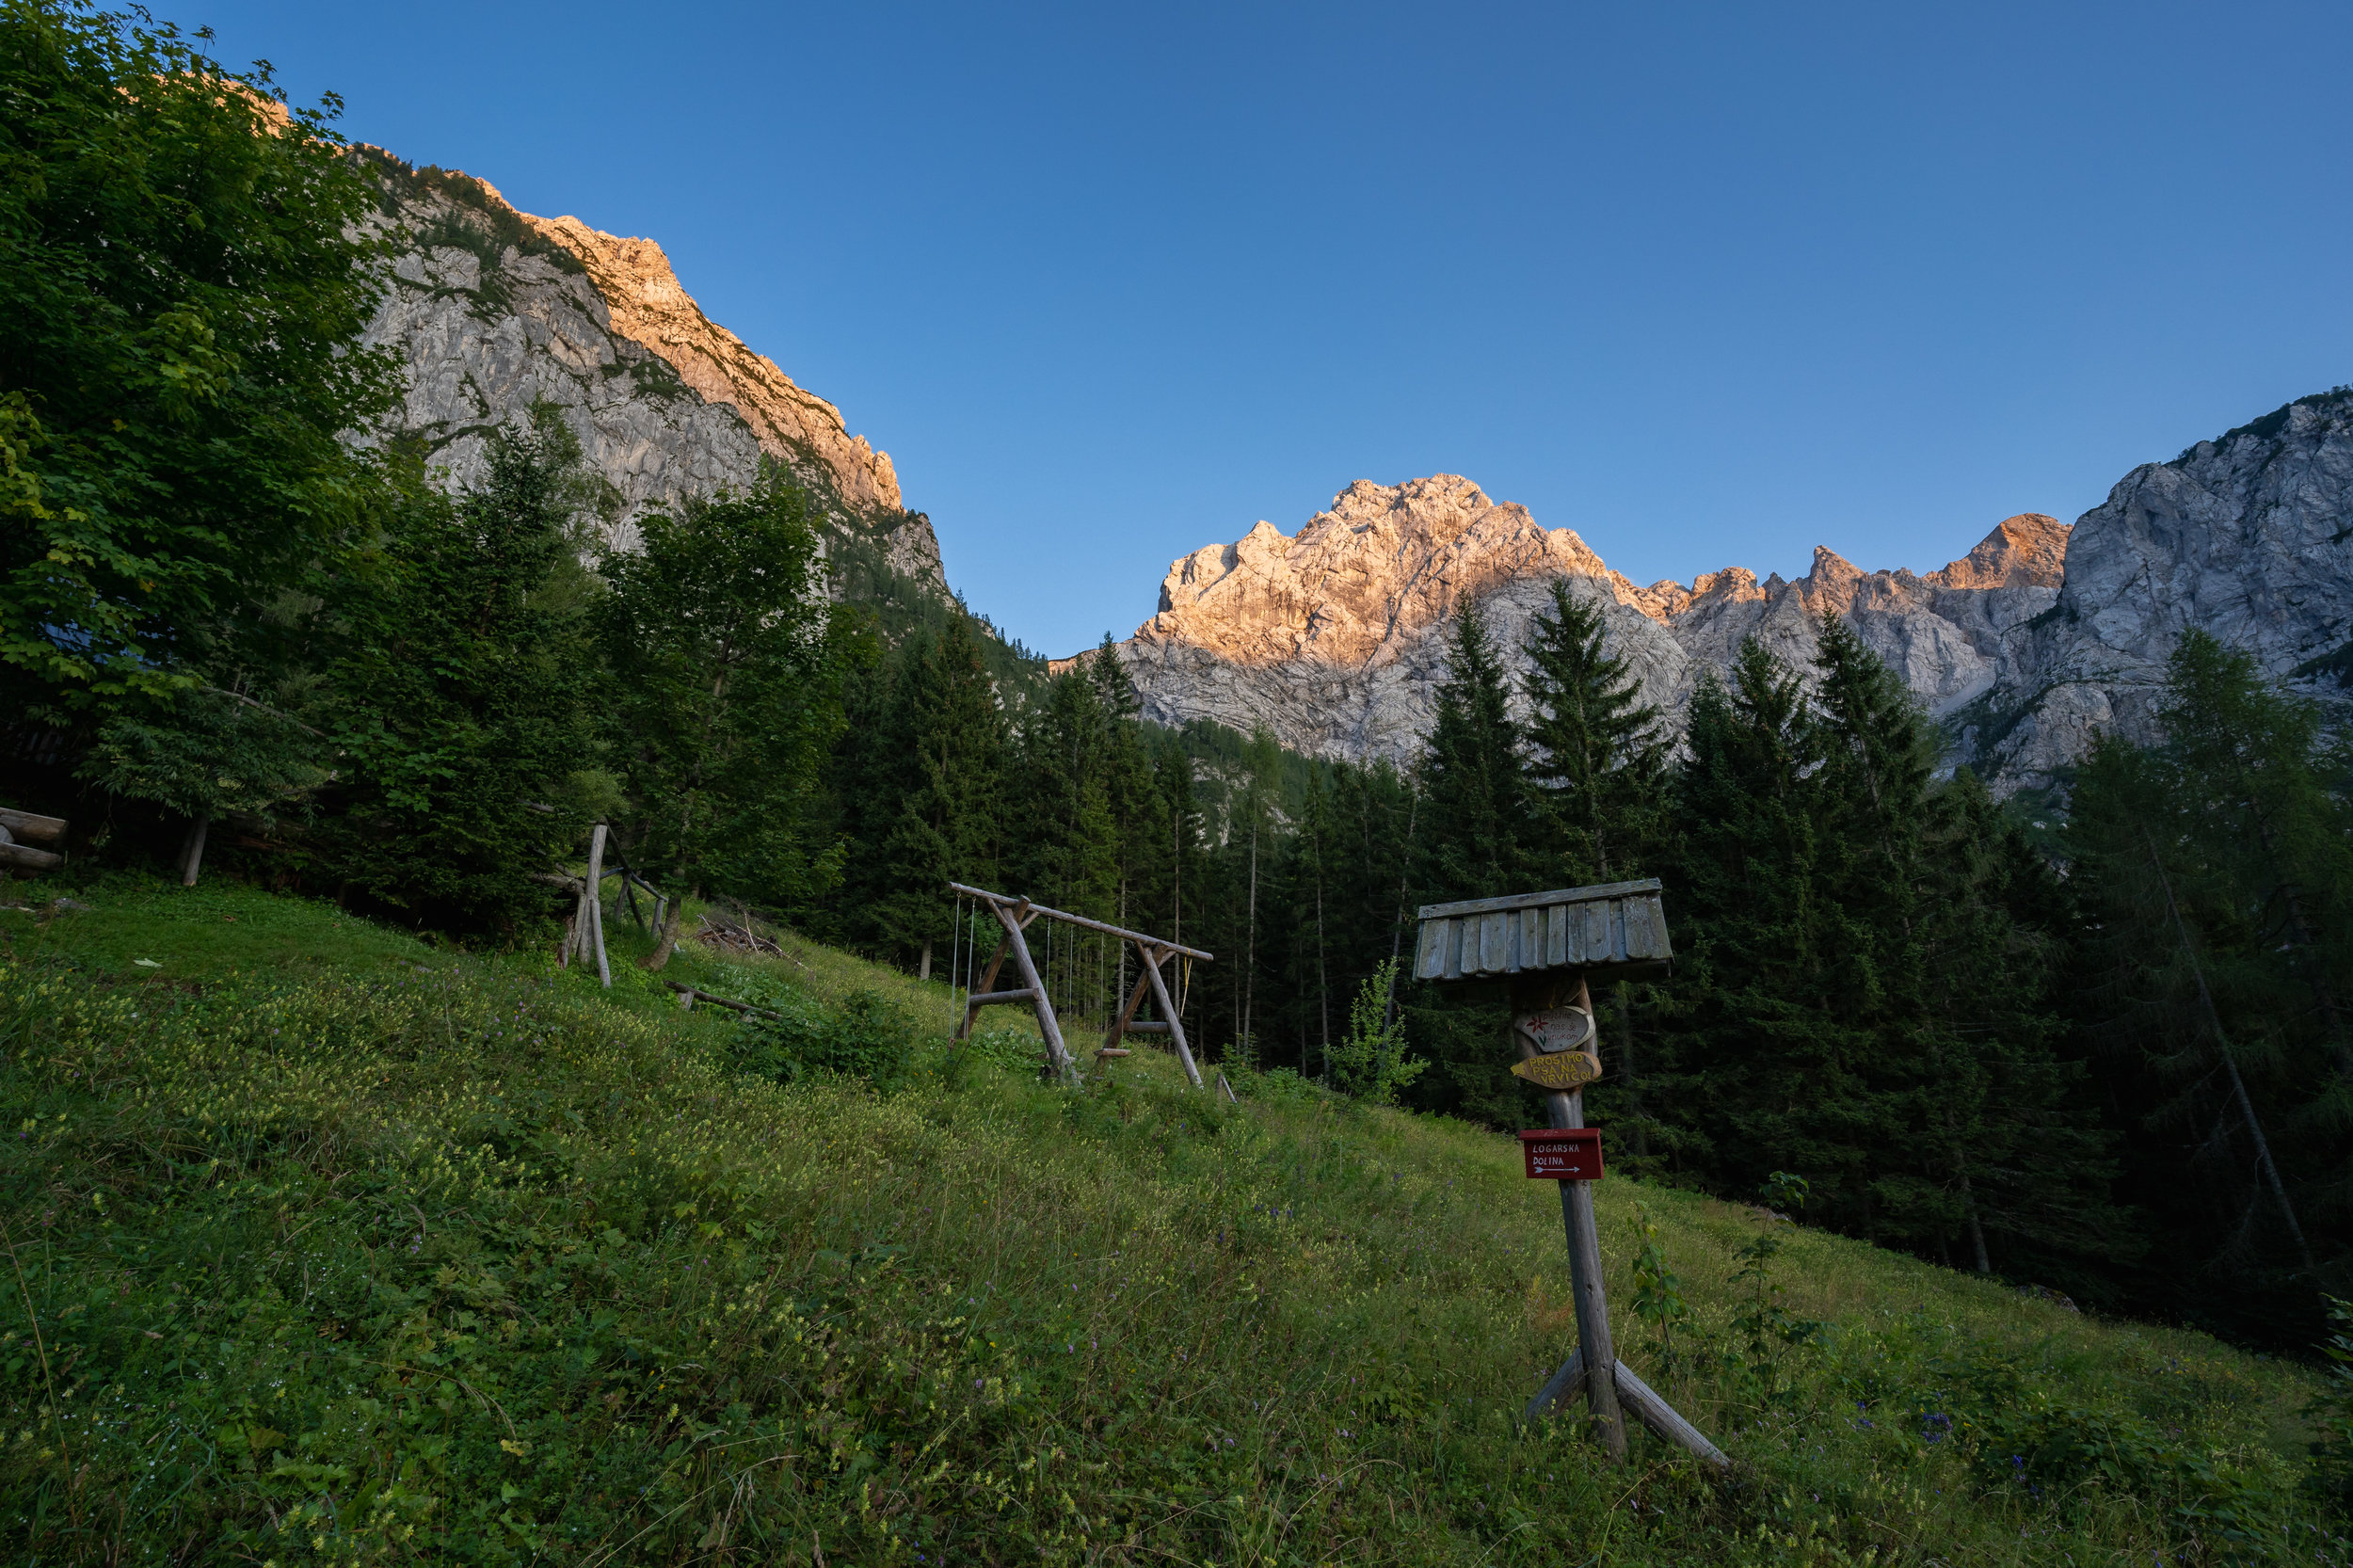 Mount Ojstrica at sunset.